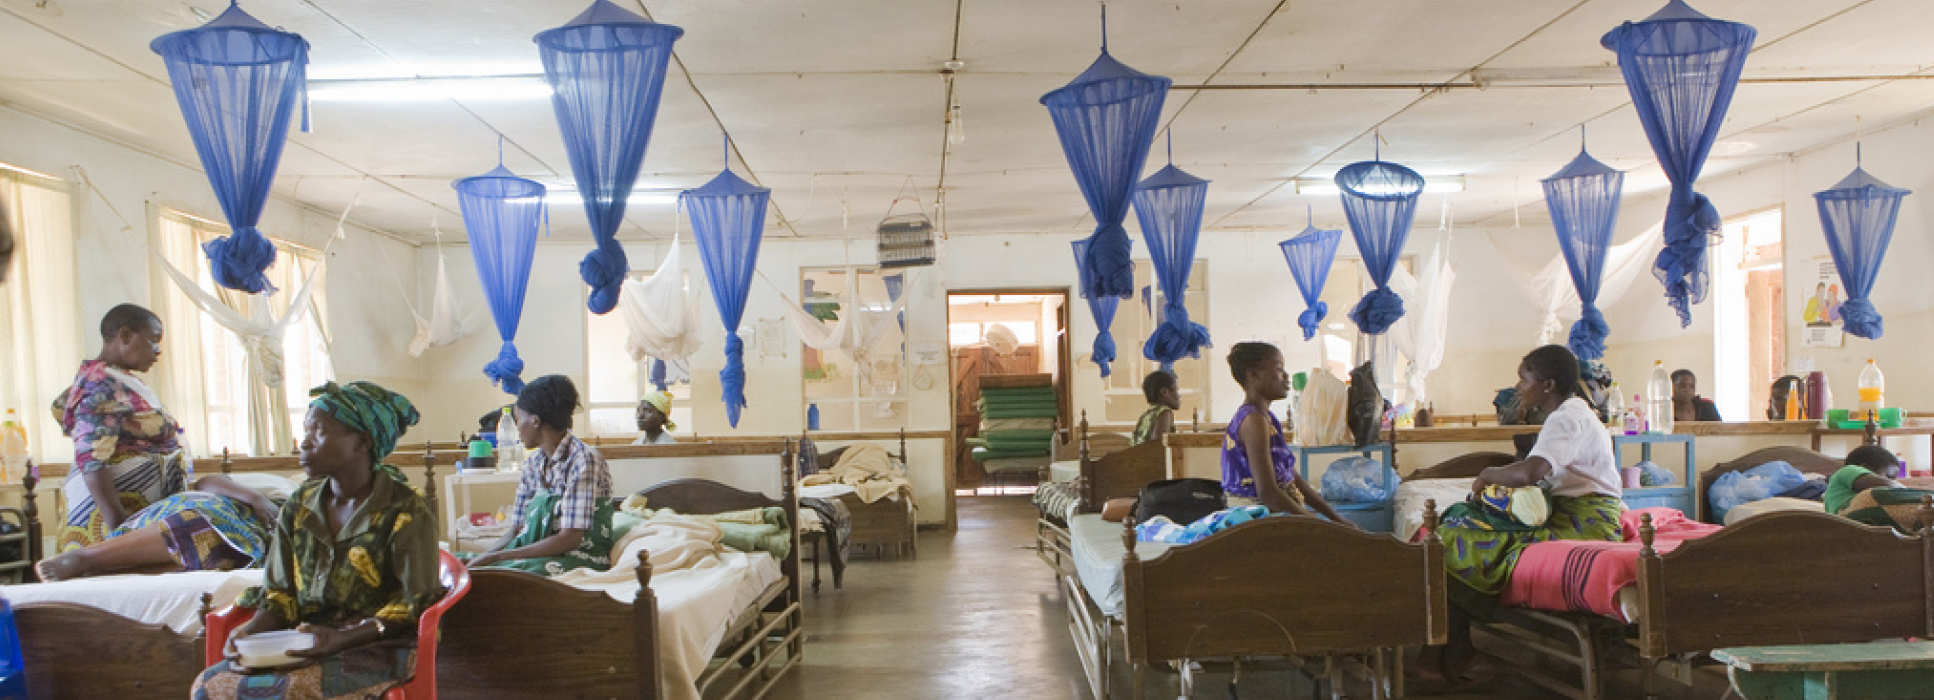 Patients in hospital being treated for malaria